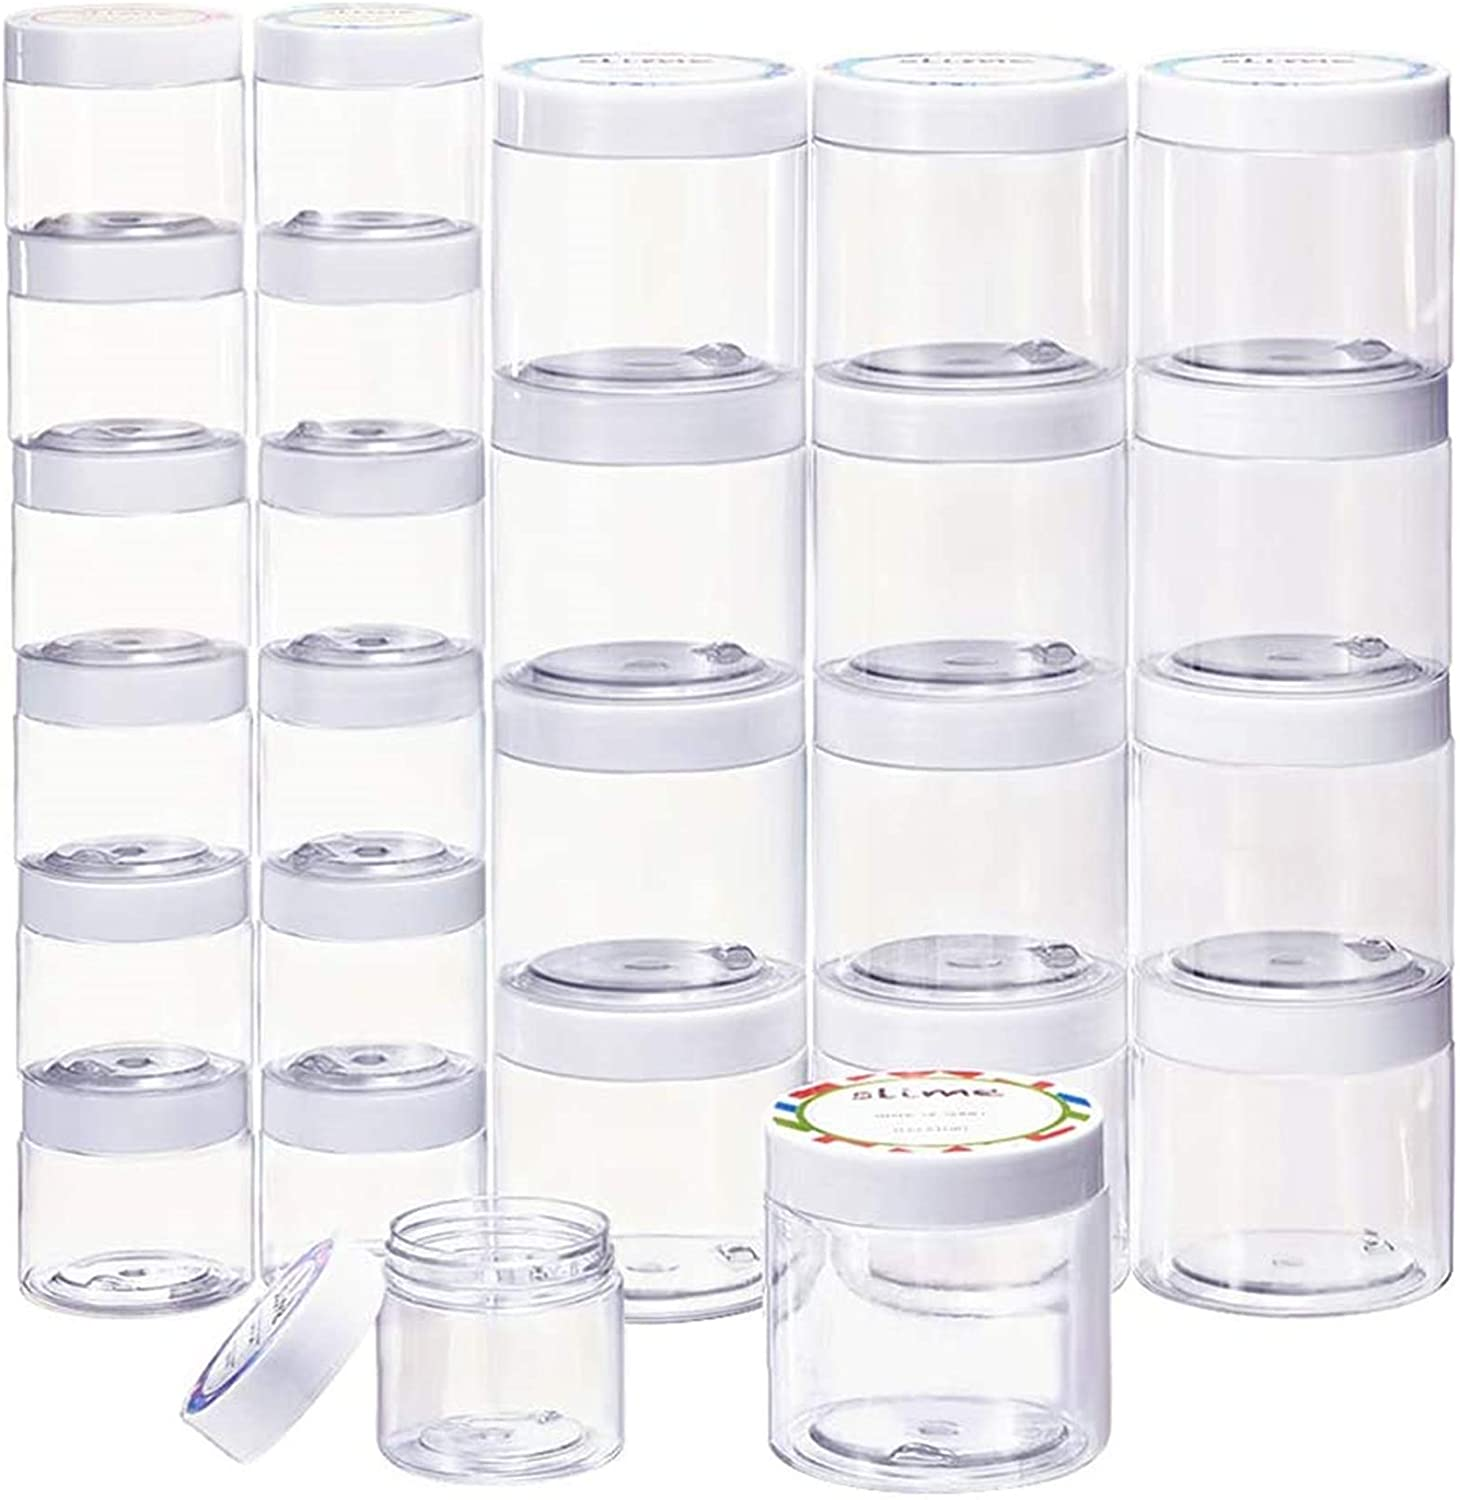 SGHUO 24 Pack Empty Slime Containers with Water-Tight Lids, 12pcs 6oz and 12pcs 2oz Plastic Storage Jars with Labels for Slime Making, Food, Beauty Products